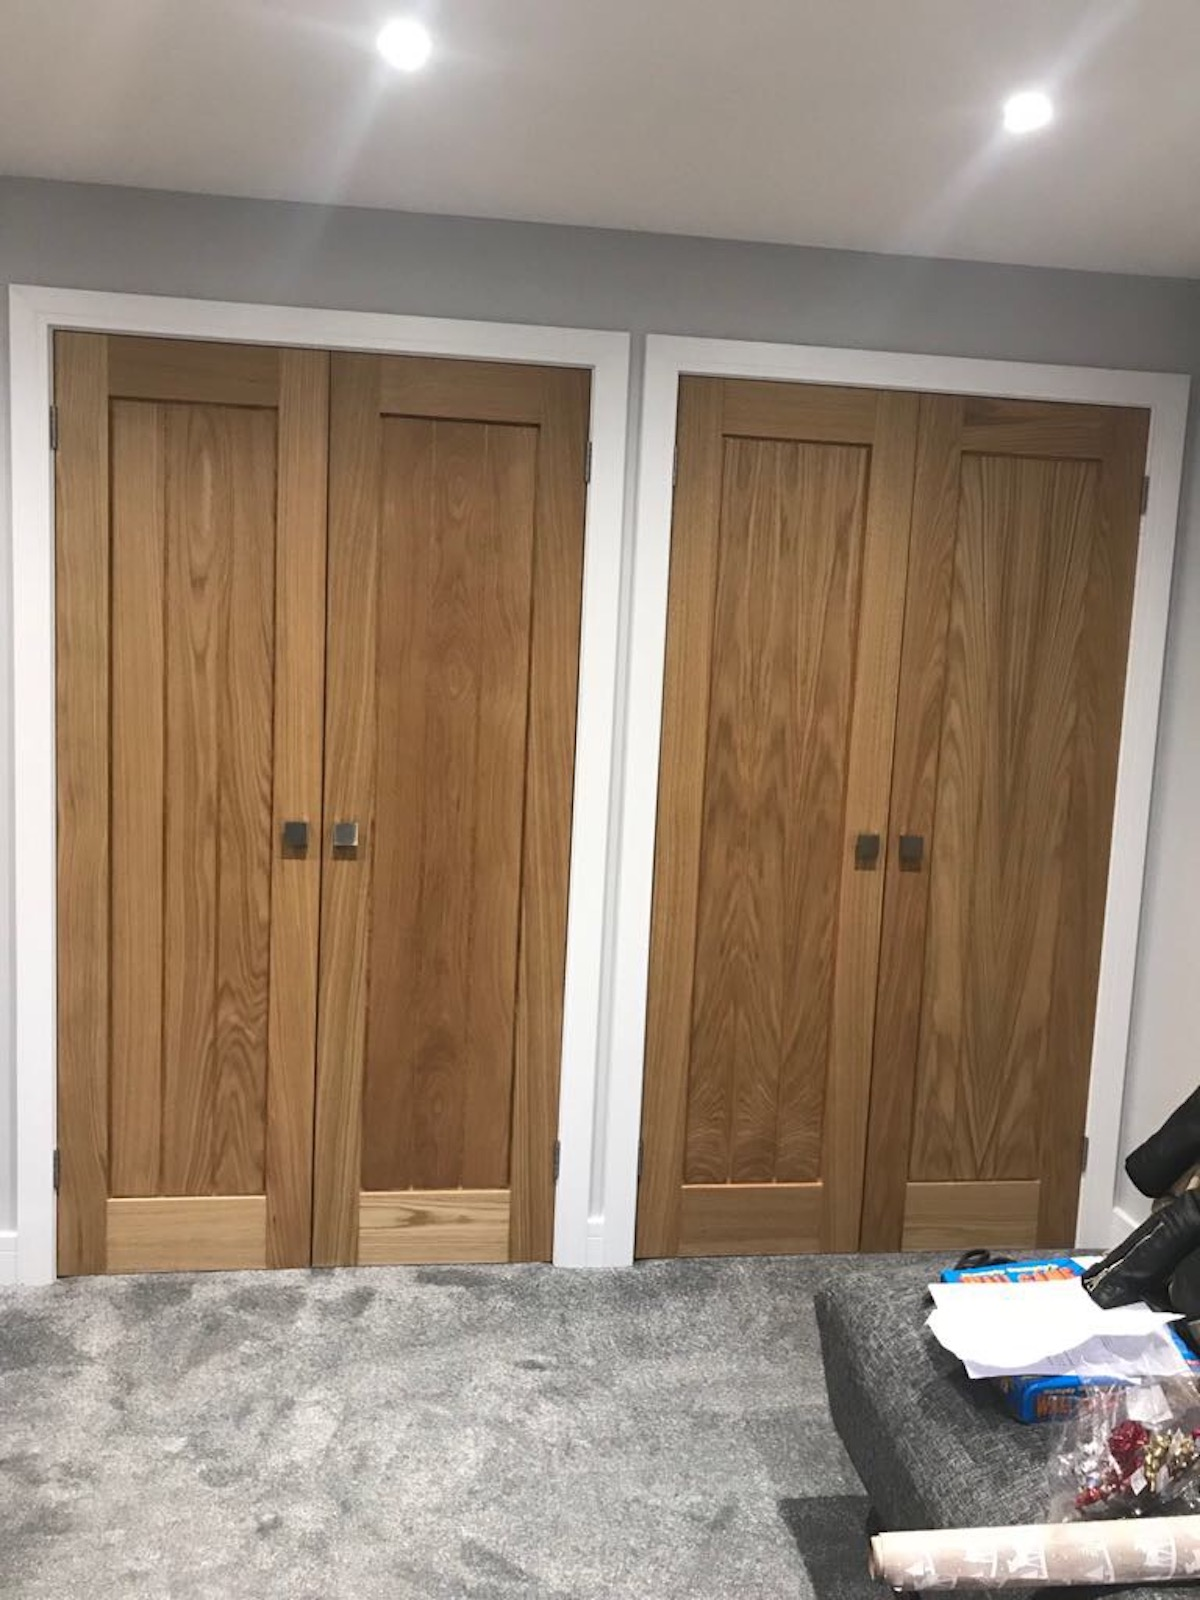 Joinery - Built in Wardrobe